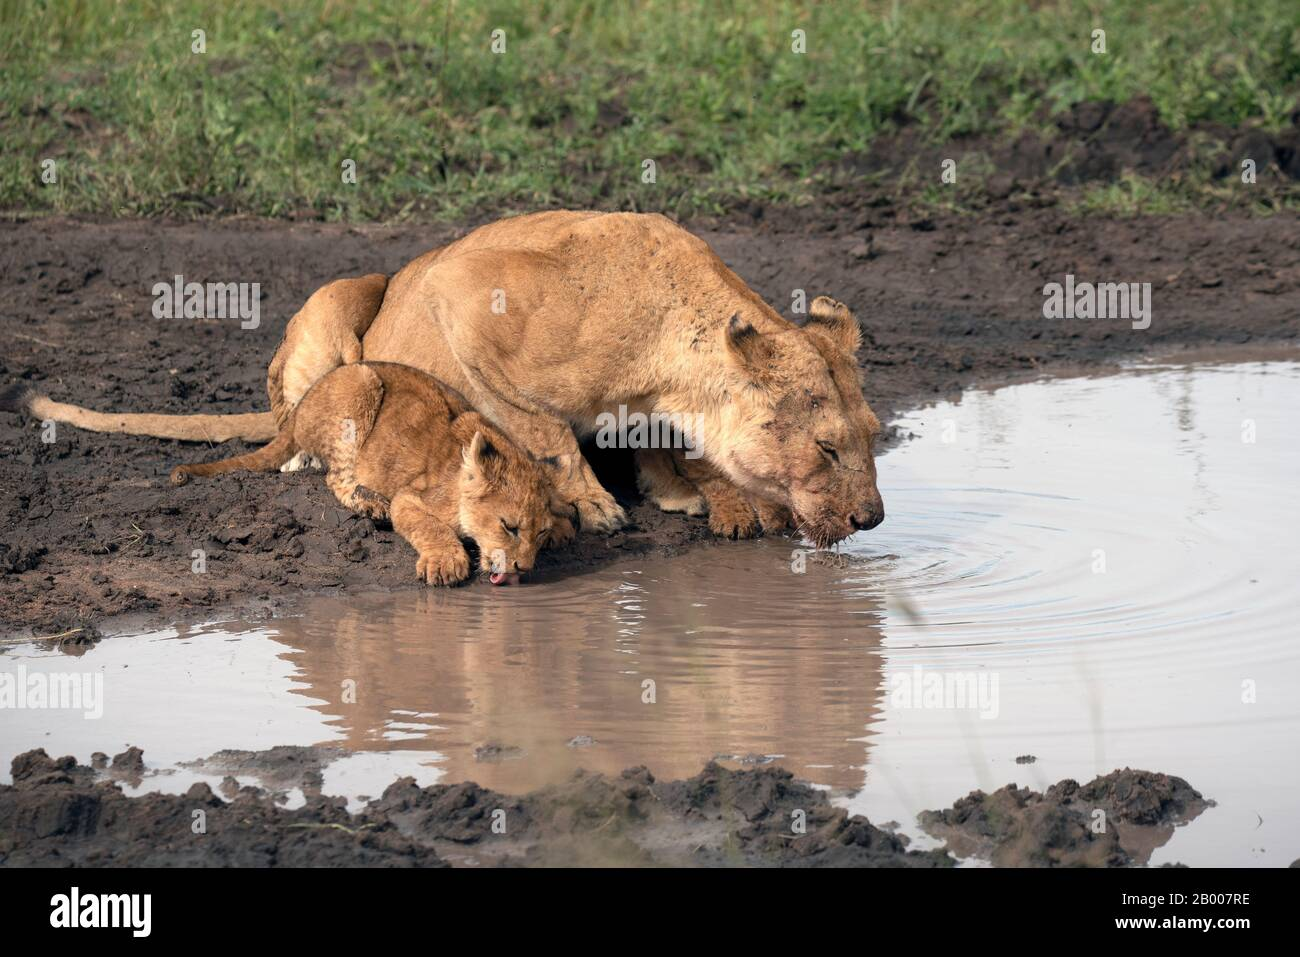 Lioness and cub lapping up the water in a muddy puddle Stock Photo